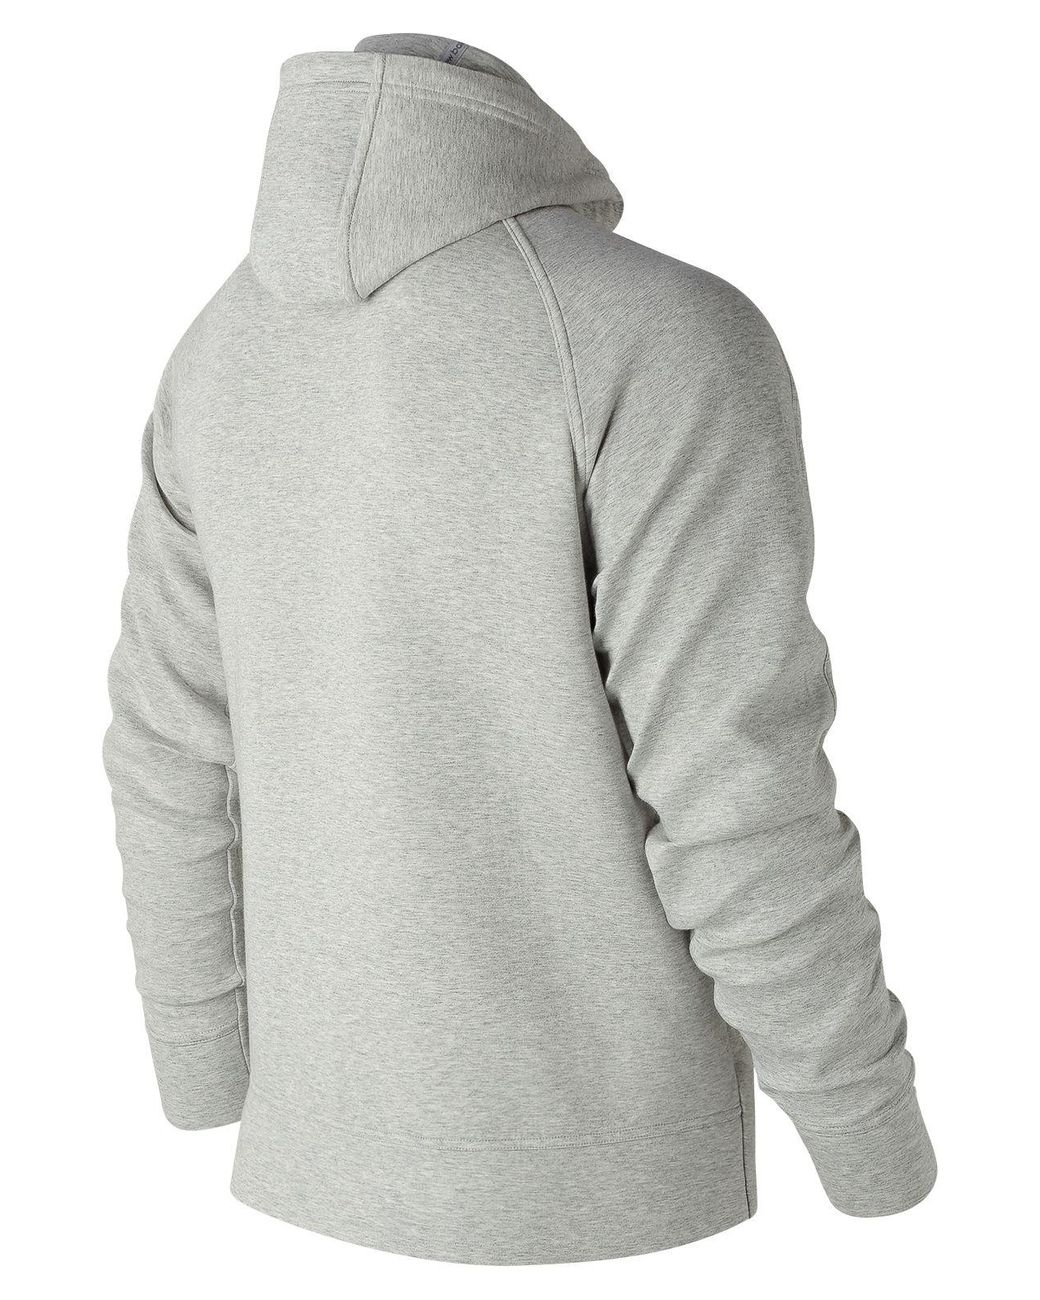 865c8ad9c9a9e New Balance New Balance 247 Luxe Fleece Jacket in Gray for Men - Save 40% -  Lyst